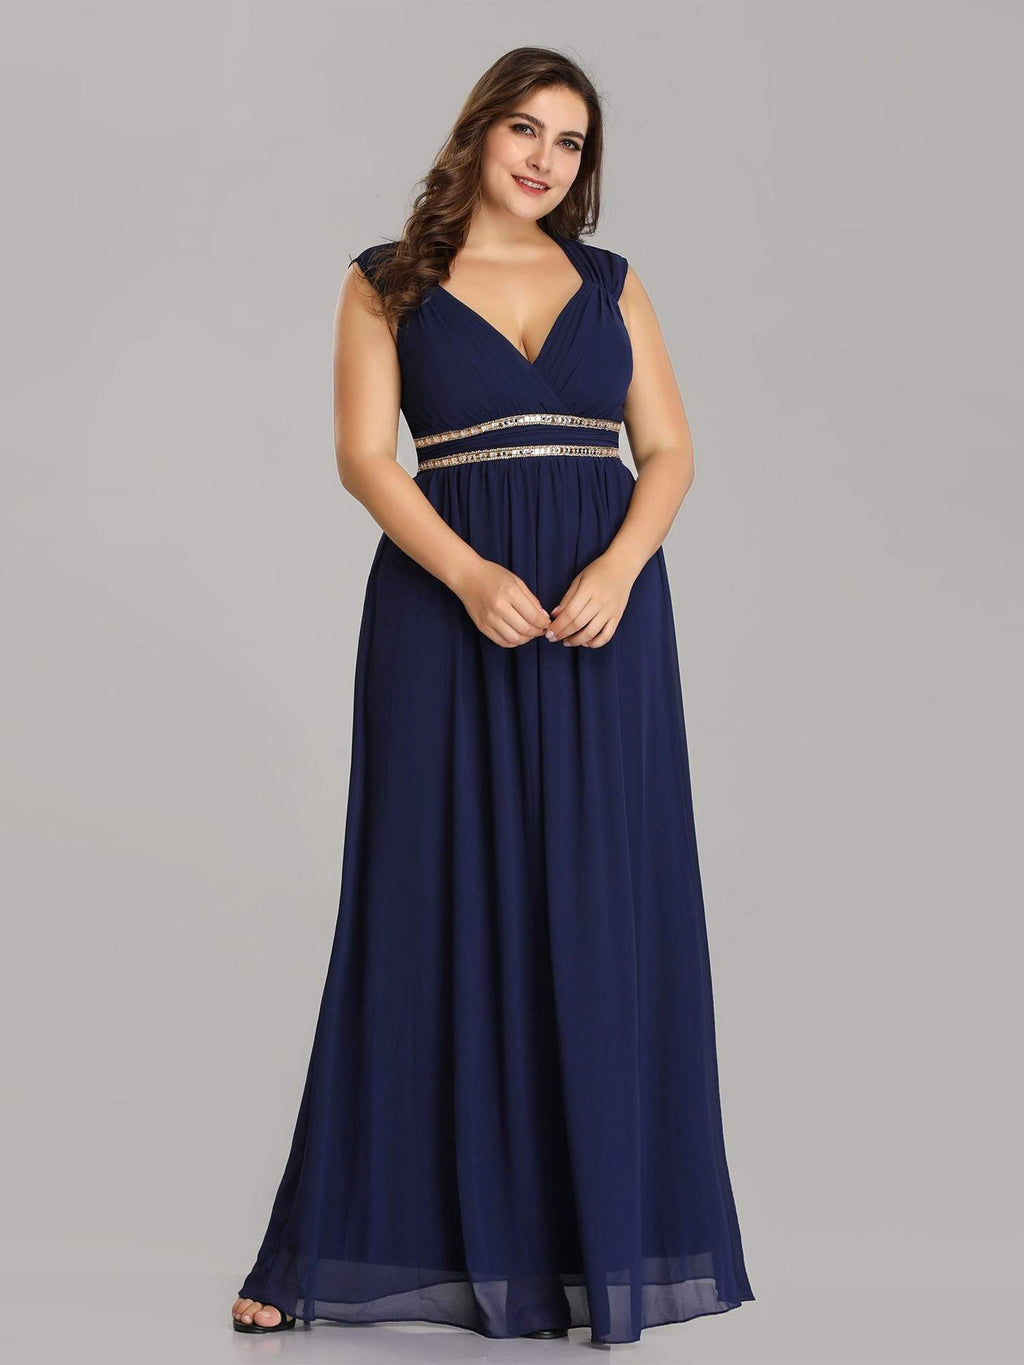 Tina bling cut out back chiffon bridesmaid dress in navy Express NZ wide!